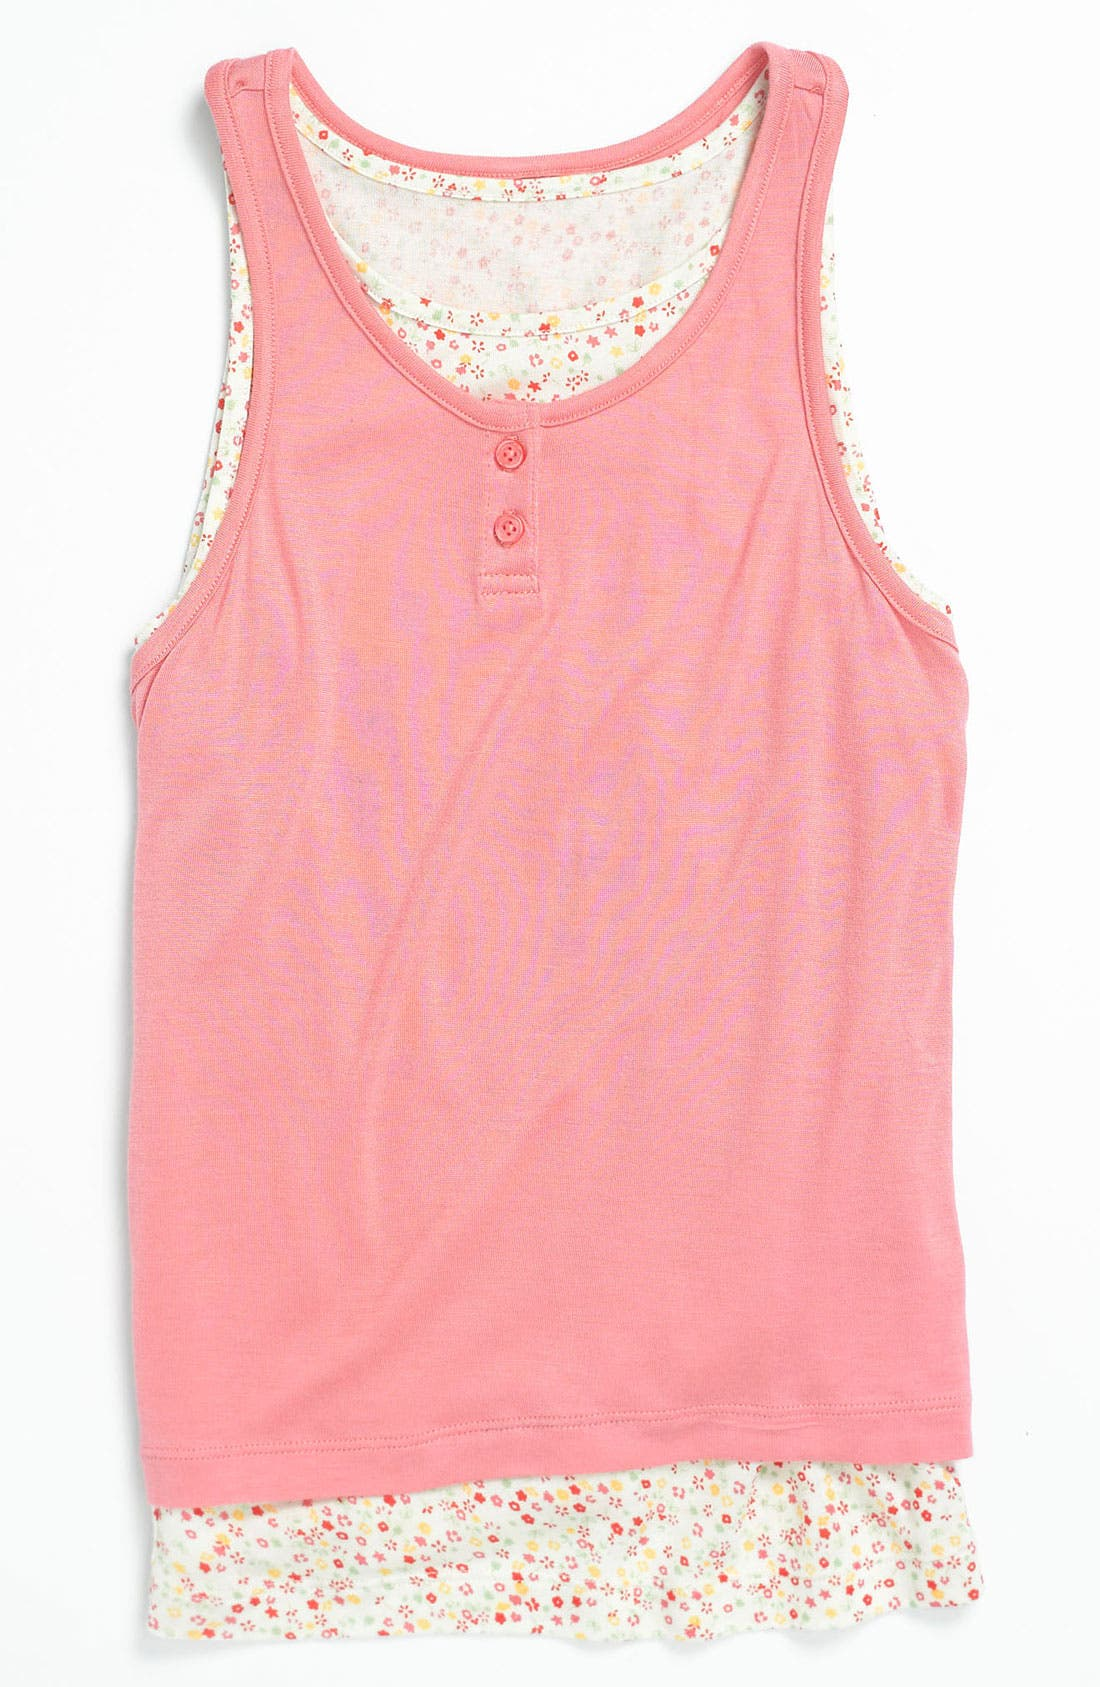 Main Image - Tucker + Tate 'Piper' Tank Top (Big Girls)